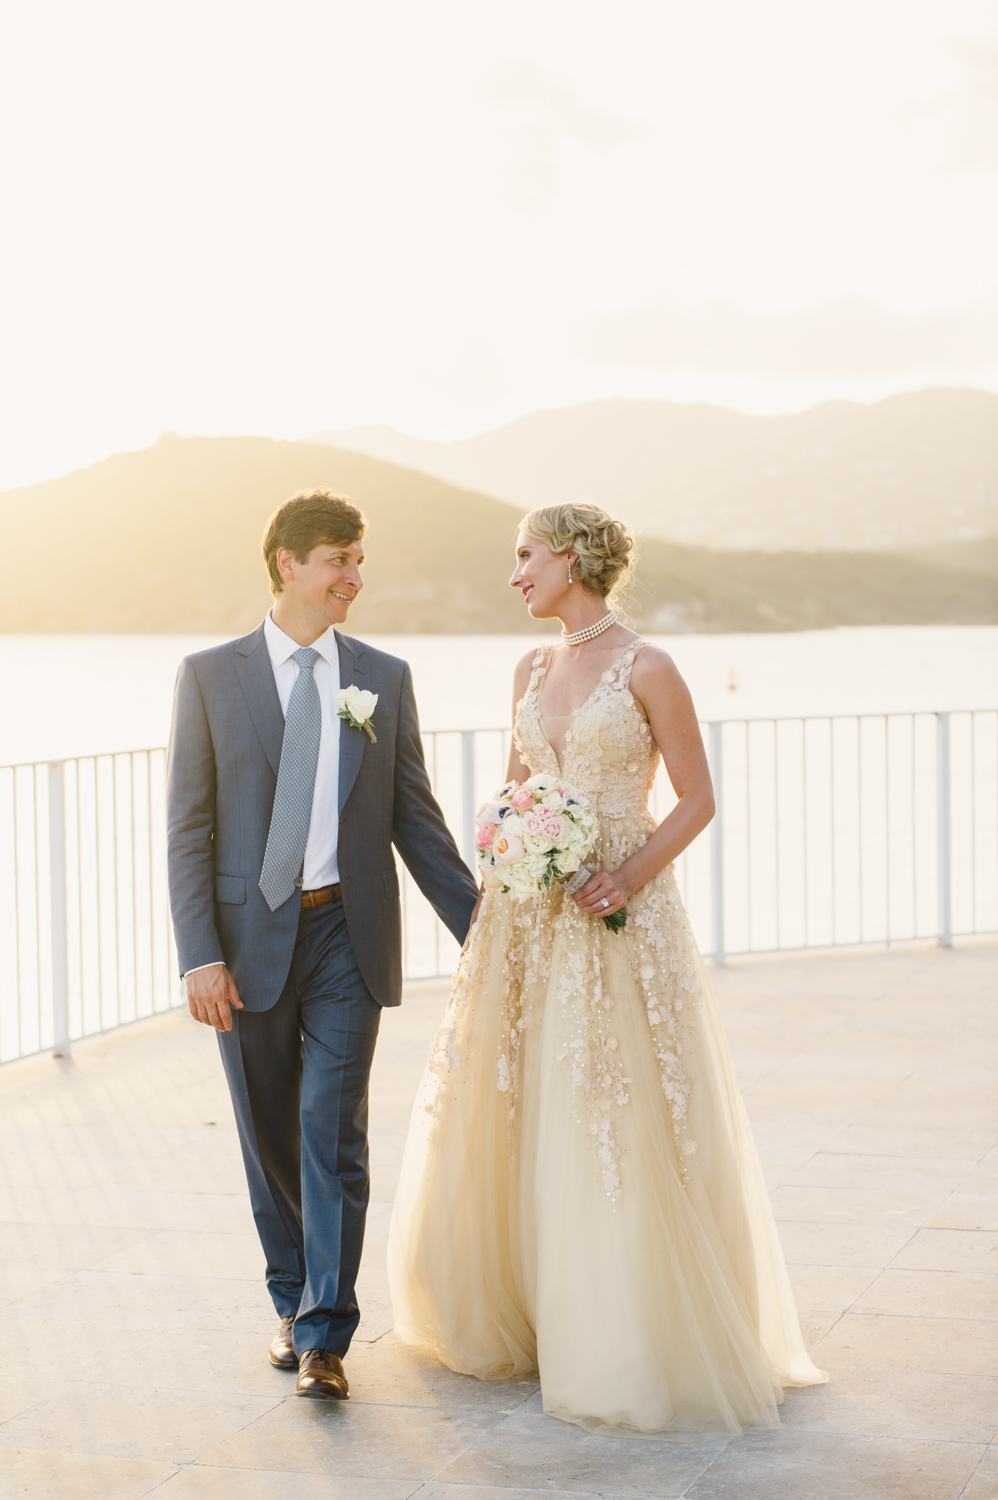 St.Thomas.FrenchmansReef.Wedding.Leme55.jpg